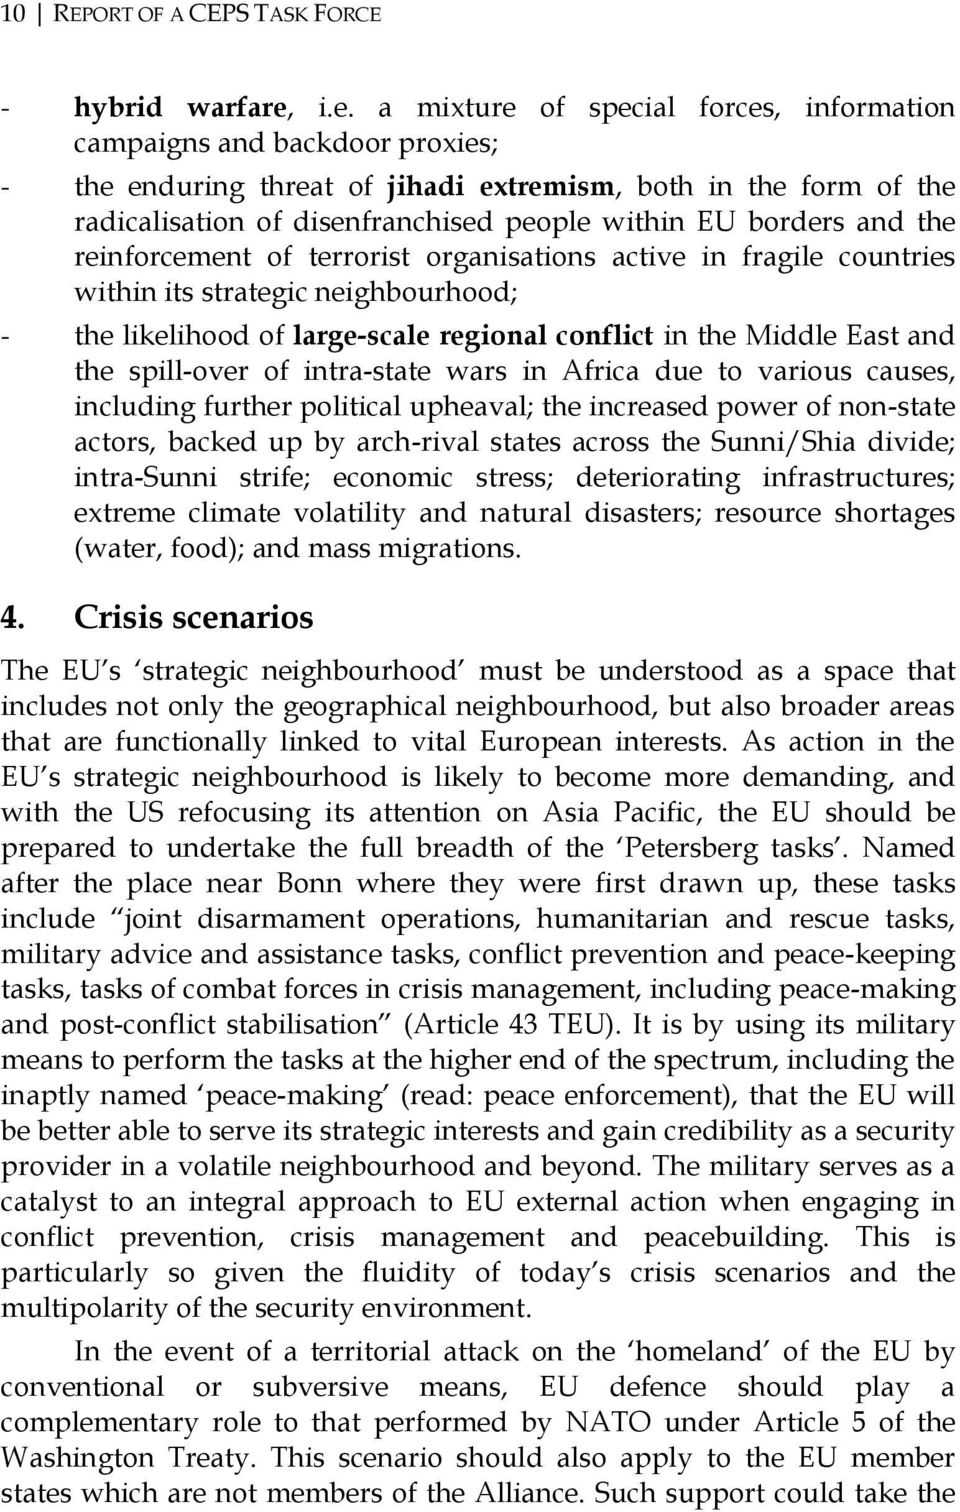 borders and the reinforcement of terrorist organisations active in fragile countries within its strategic neighbourhood; - the likelihood of large-scale regional conflict in the Middle East and the